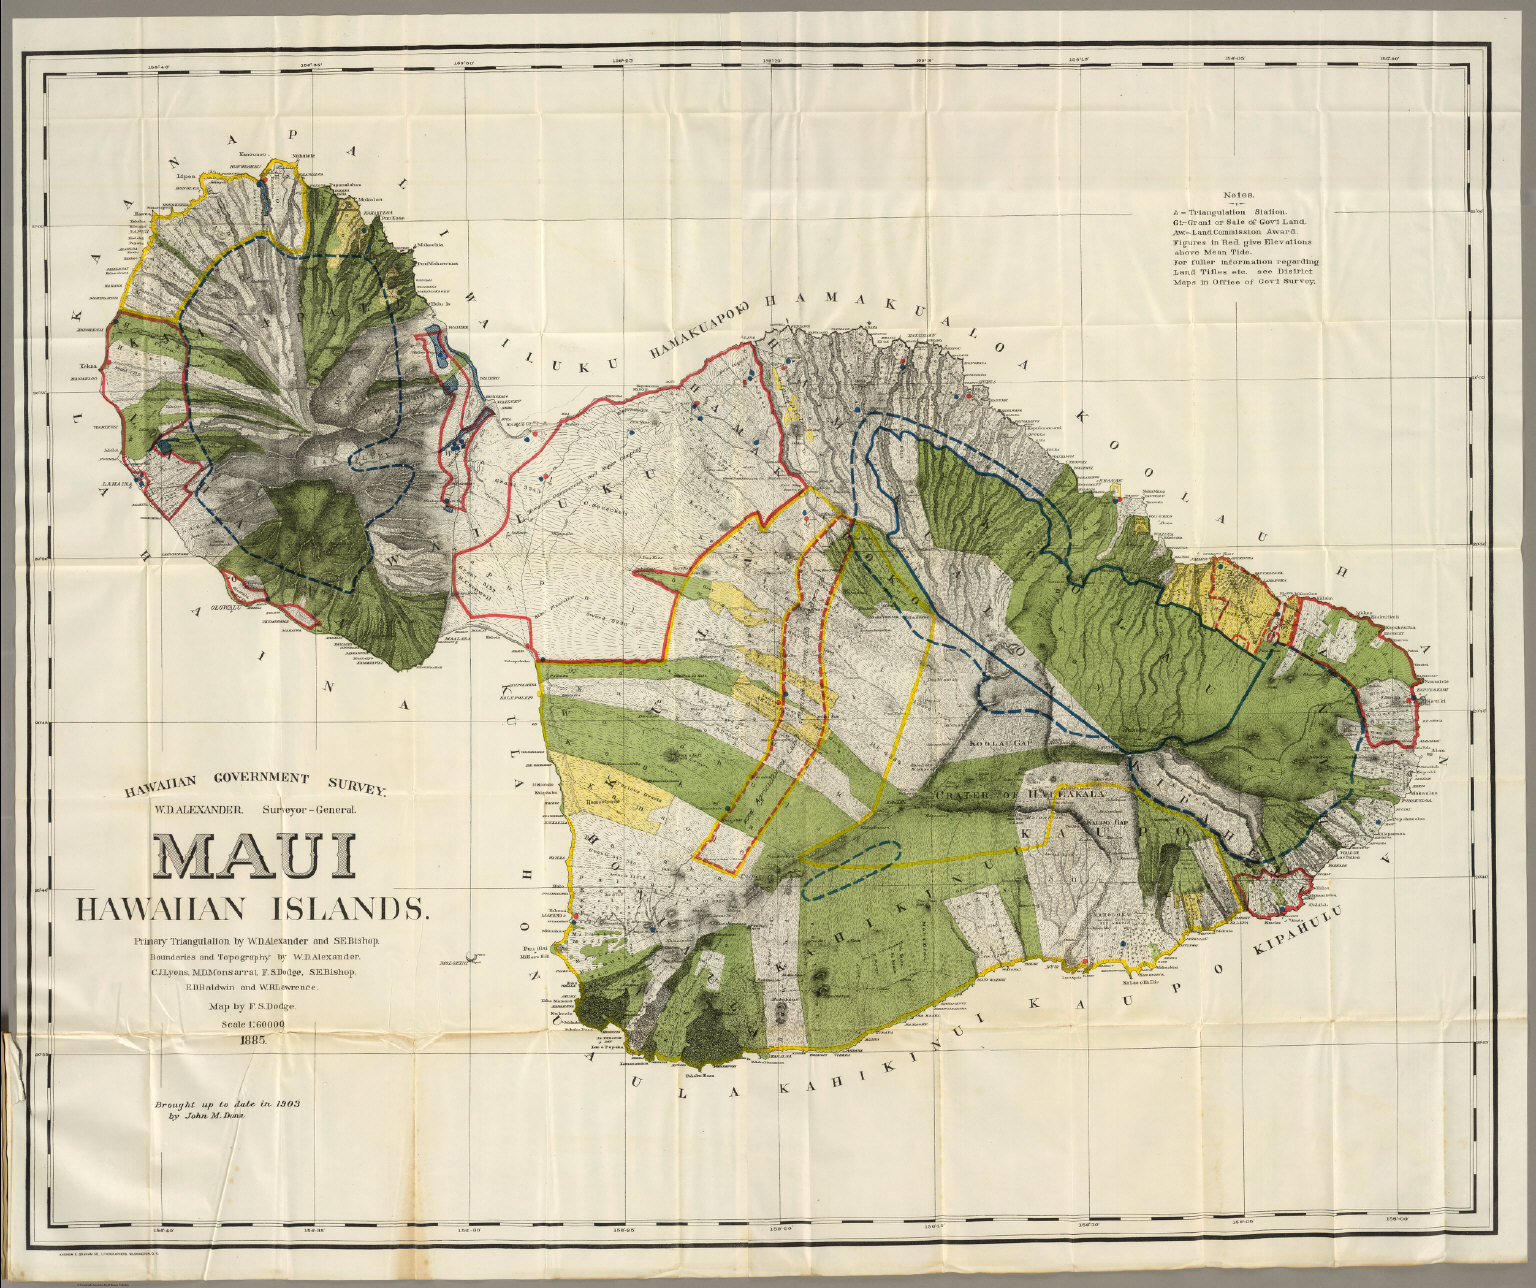 Maui david rumsey historical map collection maui thecheapjerseys Choice Image